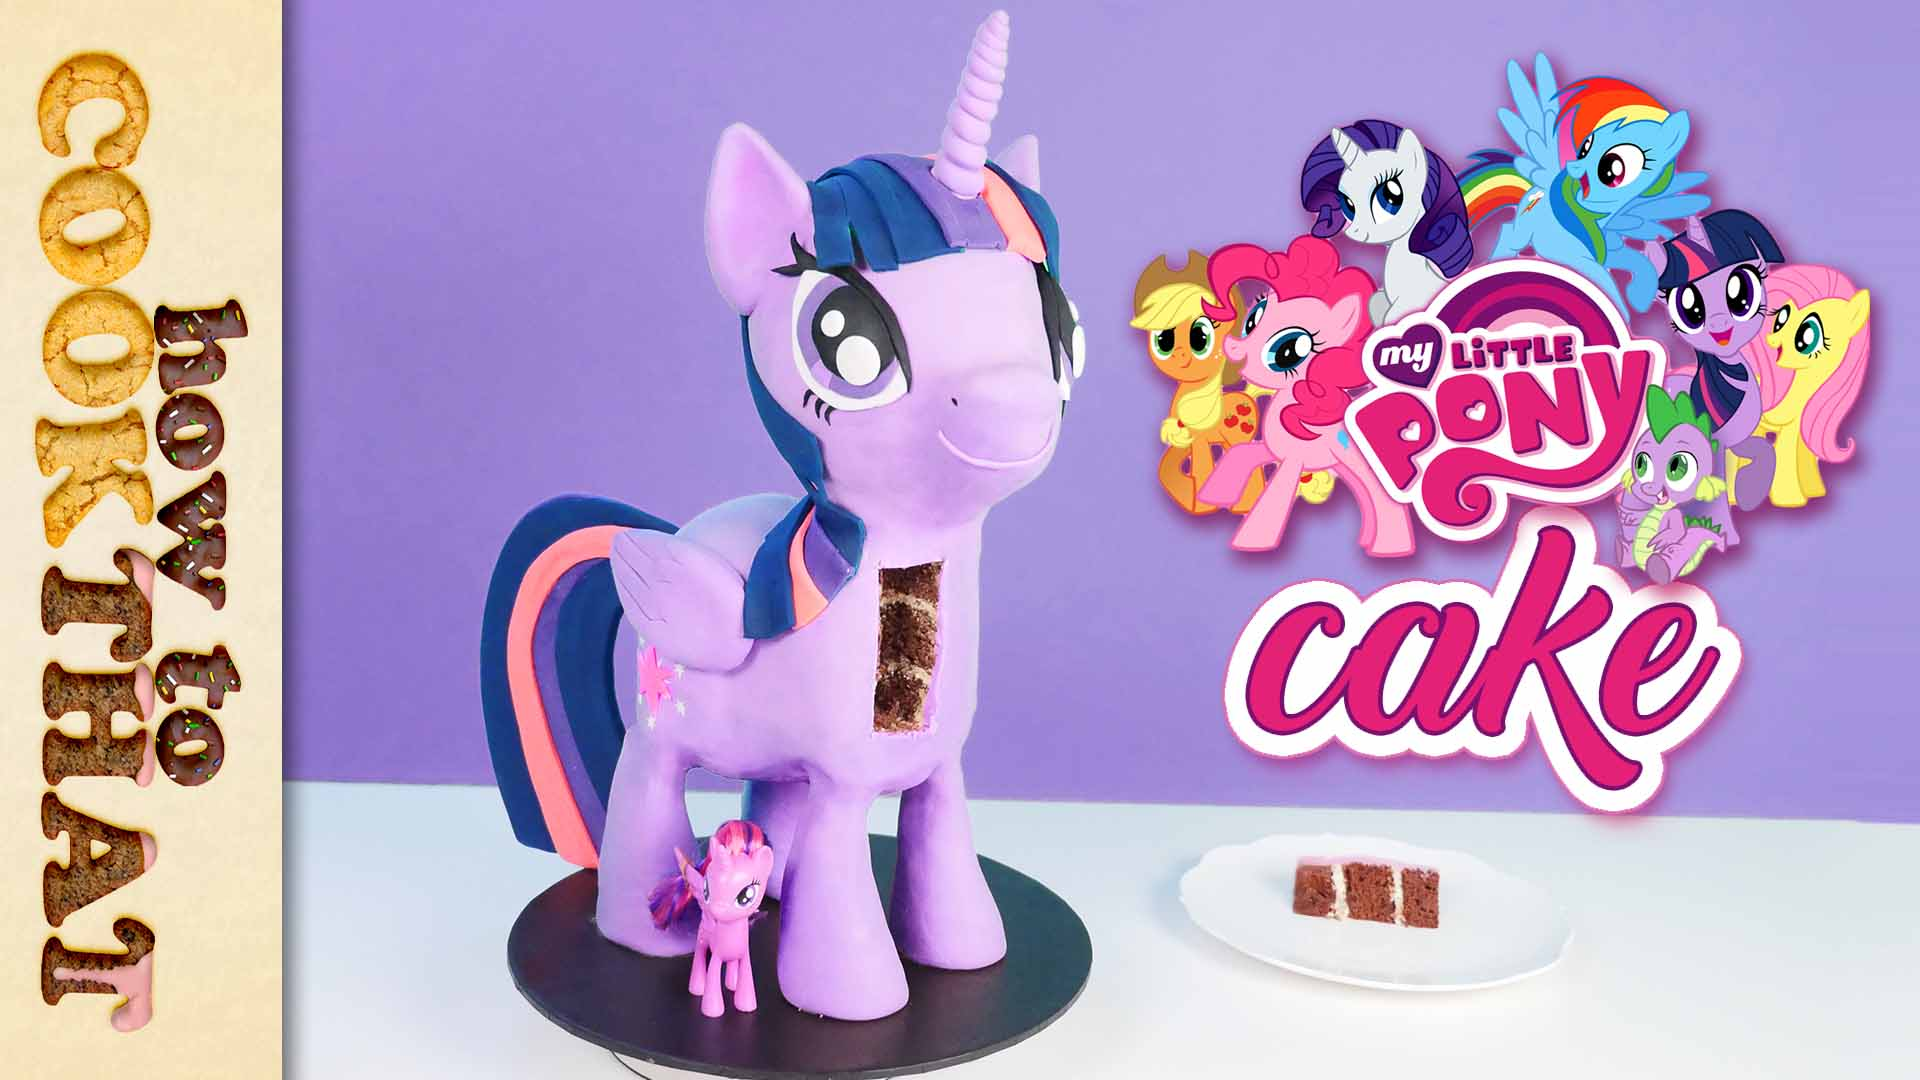 HowToCookThat : Cakes, Dessert & Chocolate | My Little Pony 3D ...